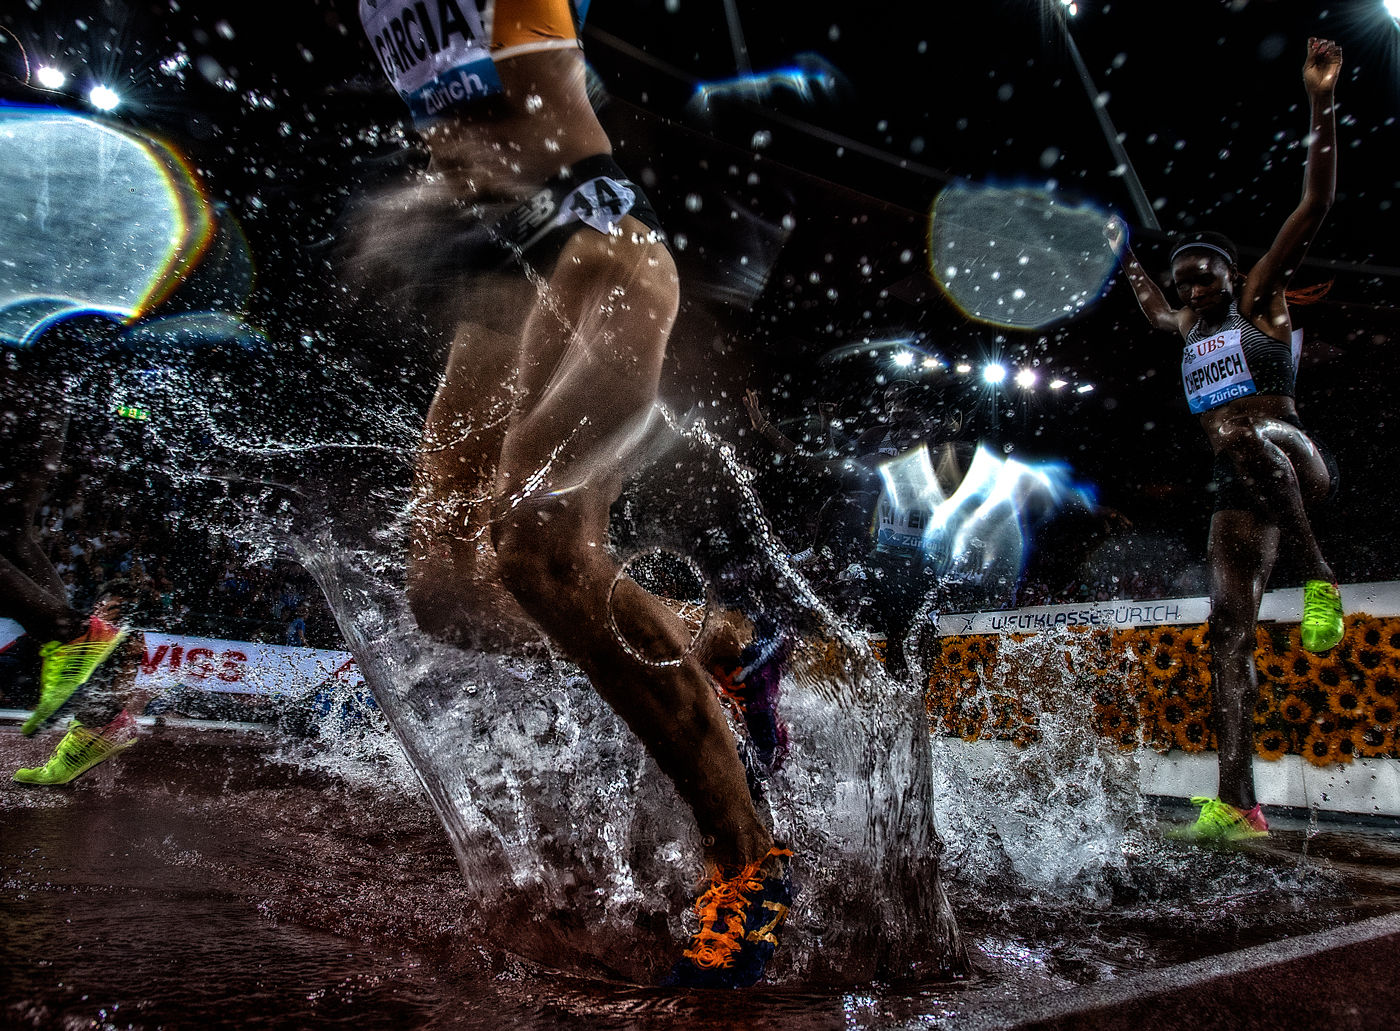 632_1r2016_weltklasse_zurich_steeple_w_splash_3_jeff_cohen_photo_224_web.jpg